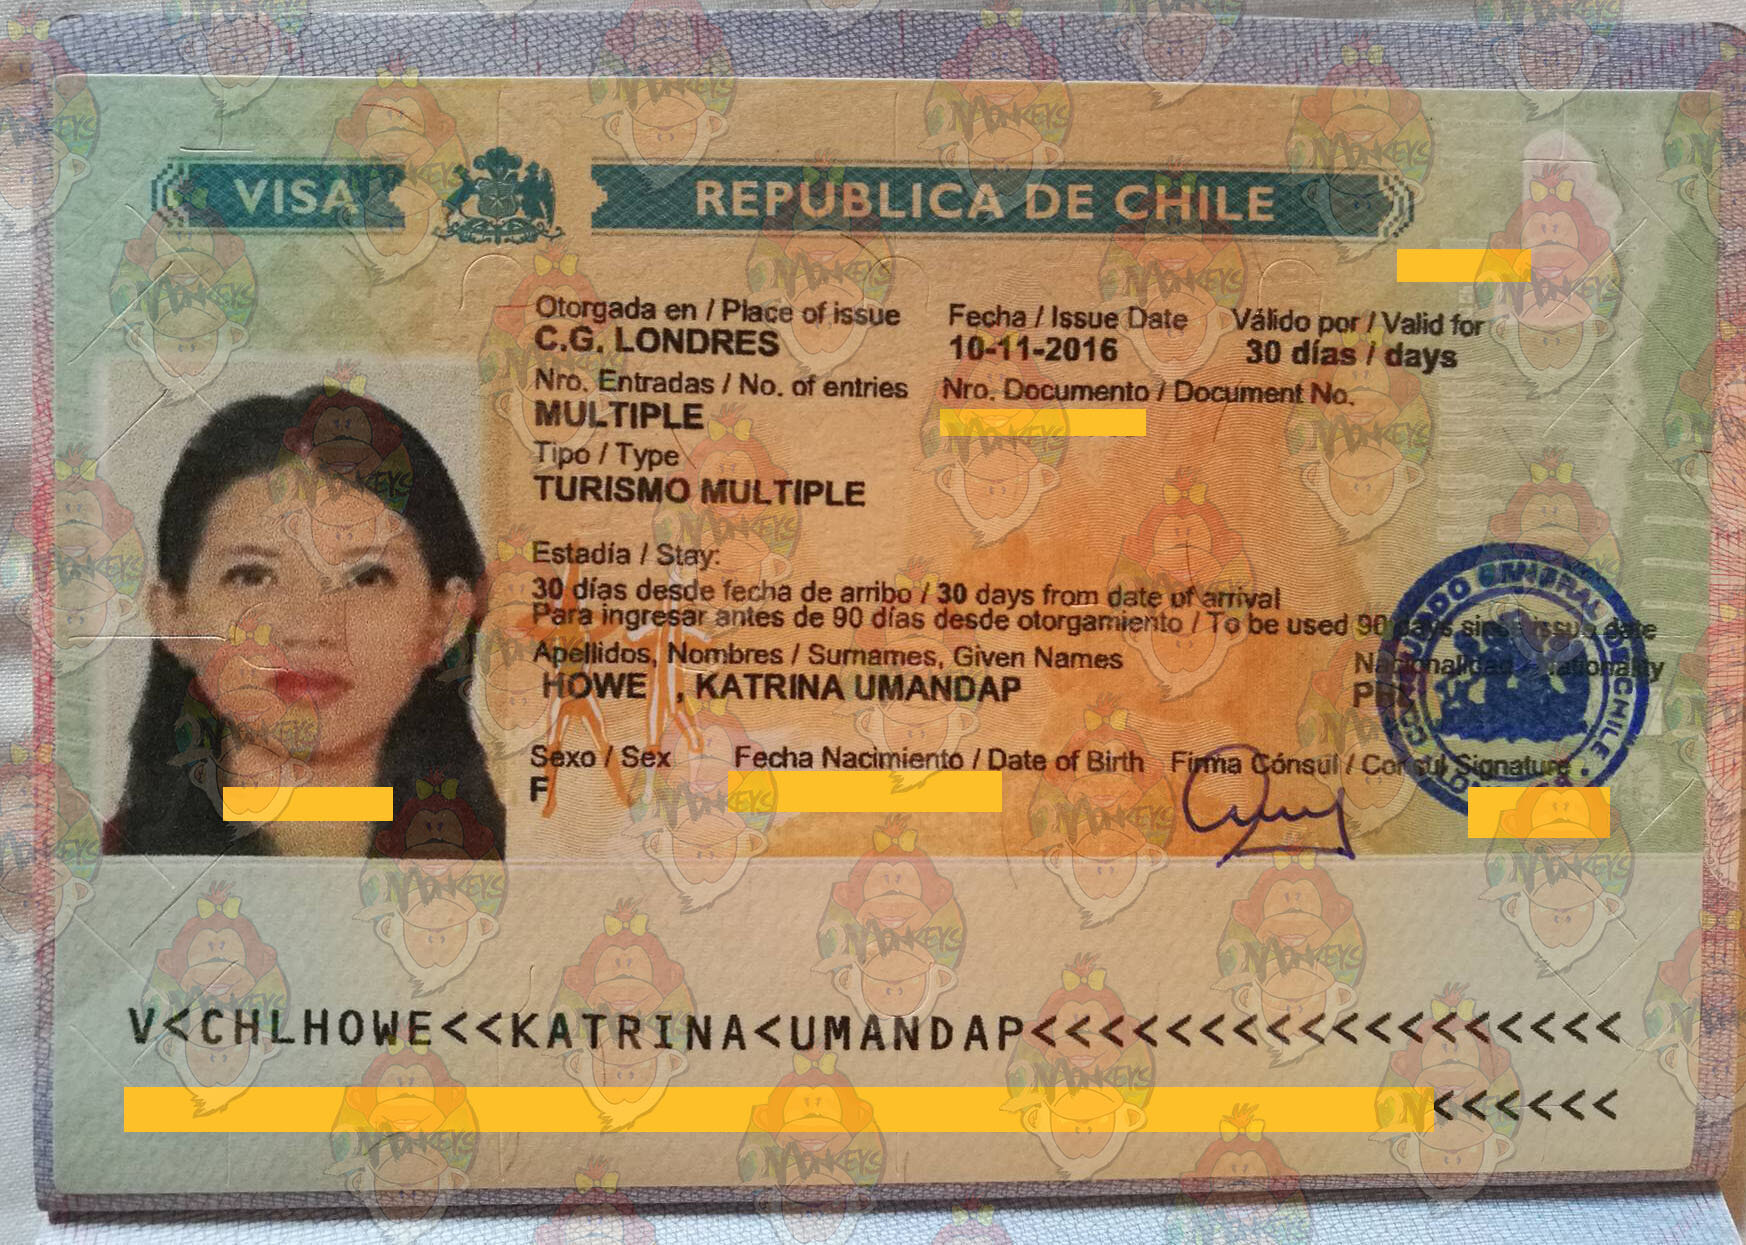 How To Get A Chile Tourist Visa With Your Philippines Passport